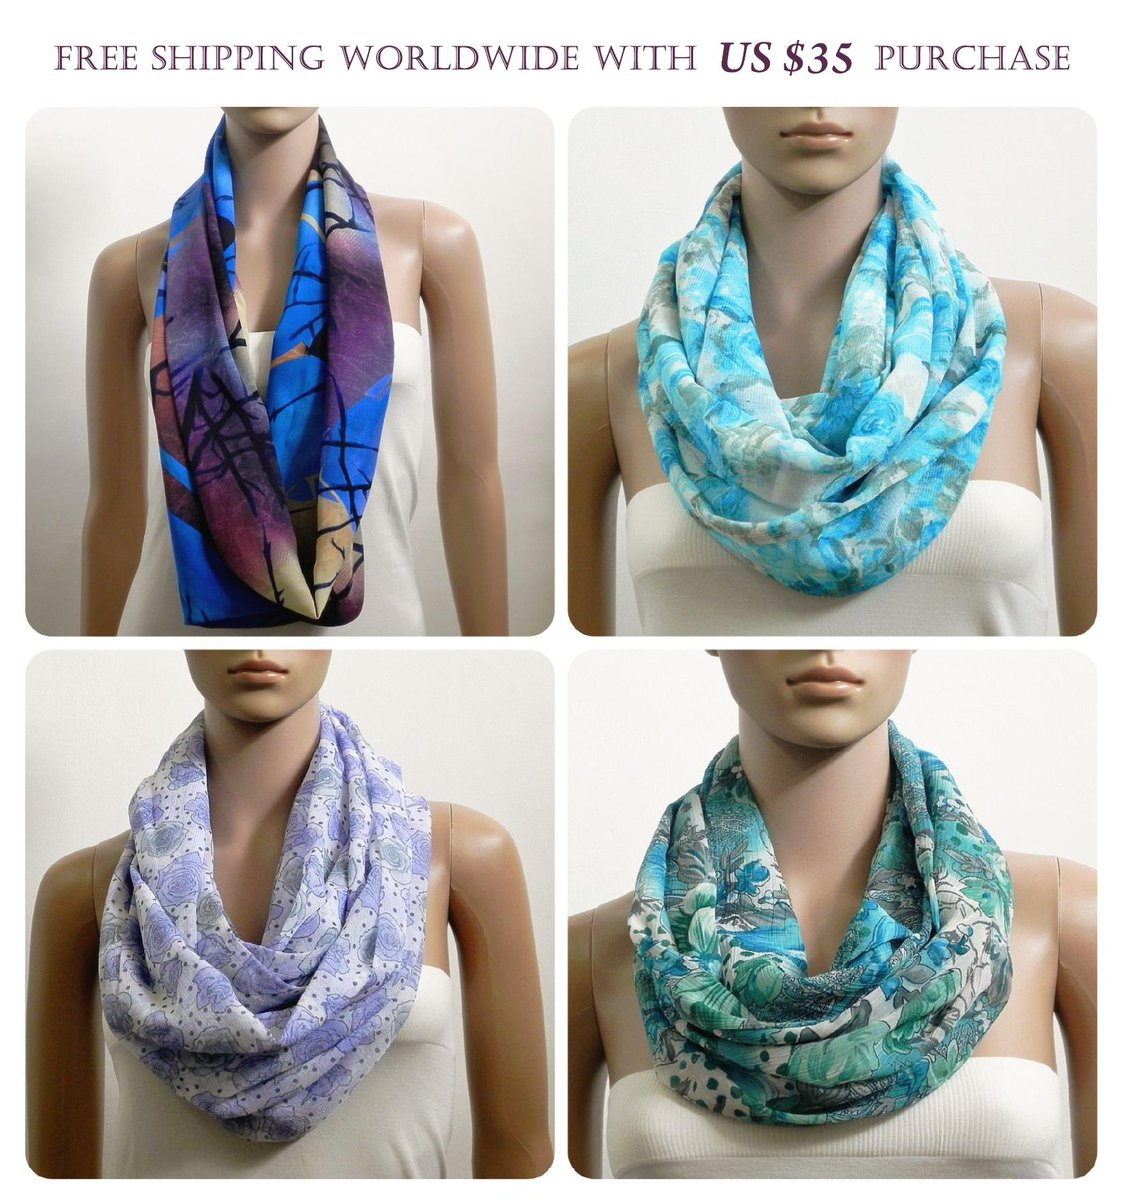 https://www.etsy.com/shop/ArtistryAllure/items?section_id=22554544 … Buy Infinity Scarves Staring from US $14 #handmade #etsyfinds #etsymntt #etsyshop #etsy #etsygifts #giftideas #shopsmall #handmadebyme #gift #gifts #Giftsforher #EtsySocial #handmadegifts #giftidea #giftsforher #shopping #giftidea #giftforher #FreeShipping